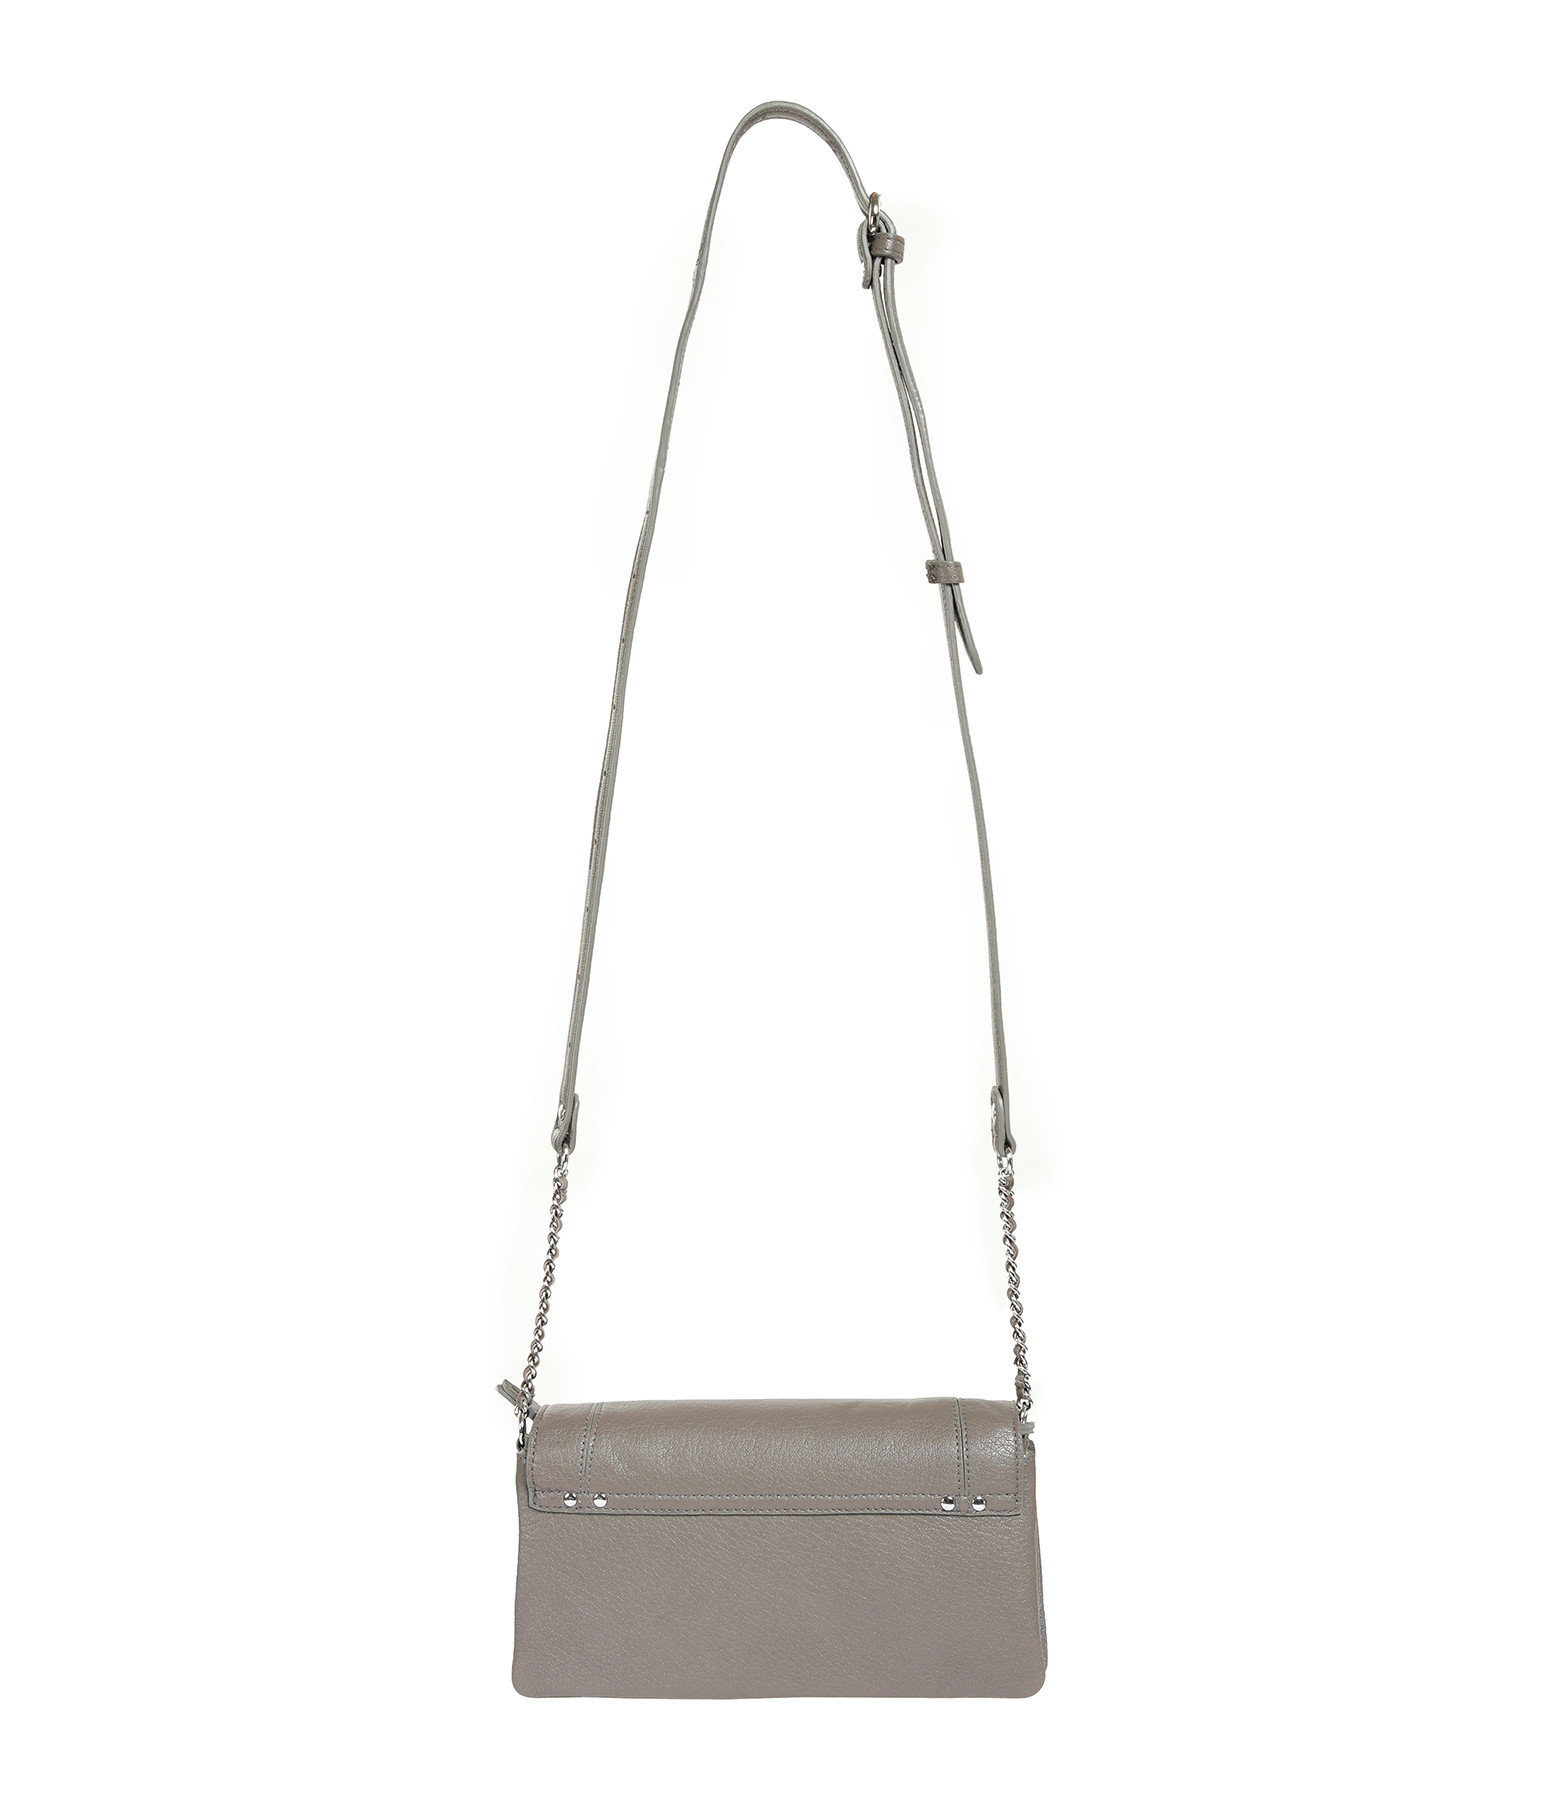 JEROME DREYFUSS - Sac Charly S Chèvre Gris